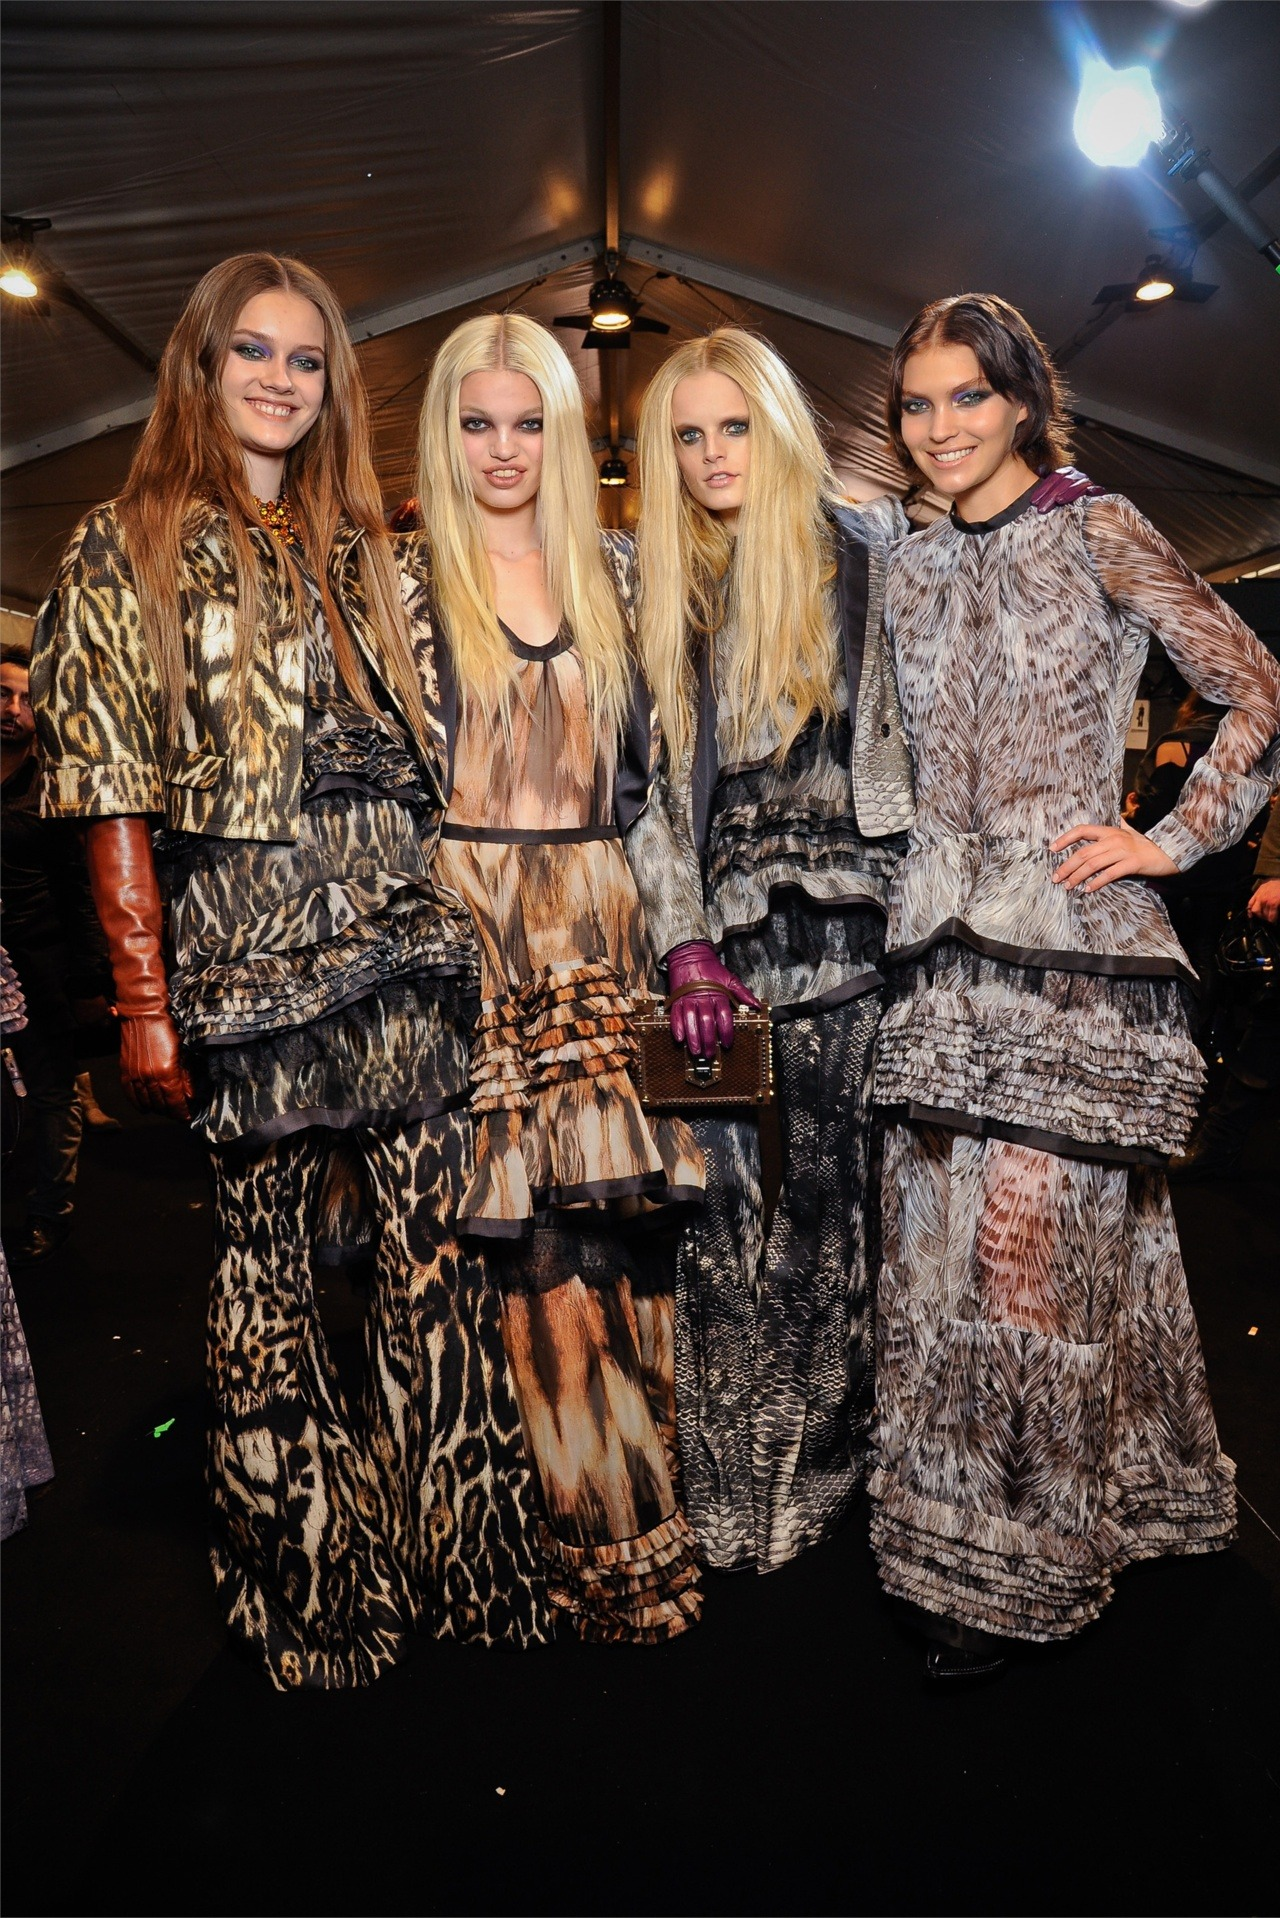 Jac, Daphne, Hanne and Arizona backstage at Roberto Cavalli fw12. beautiful girls.